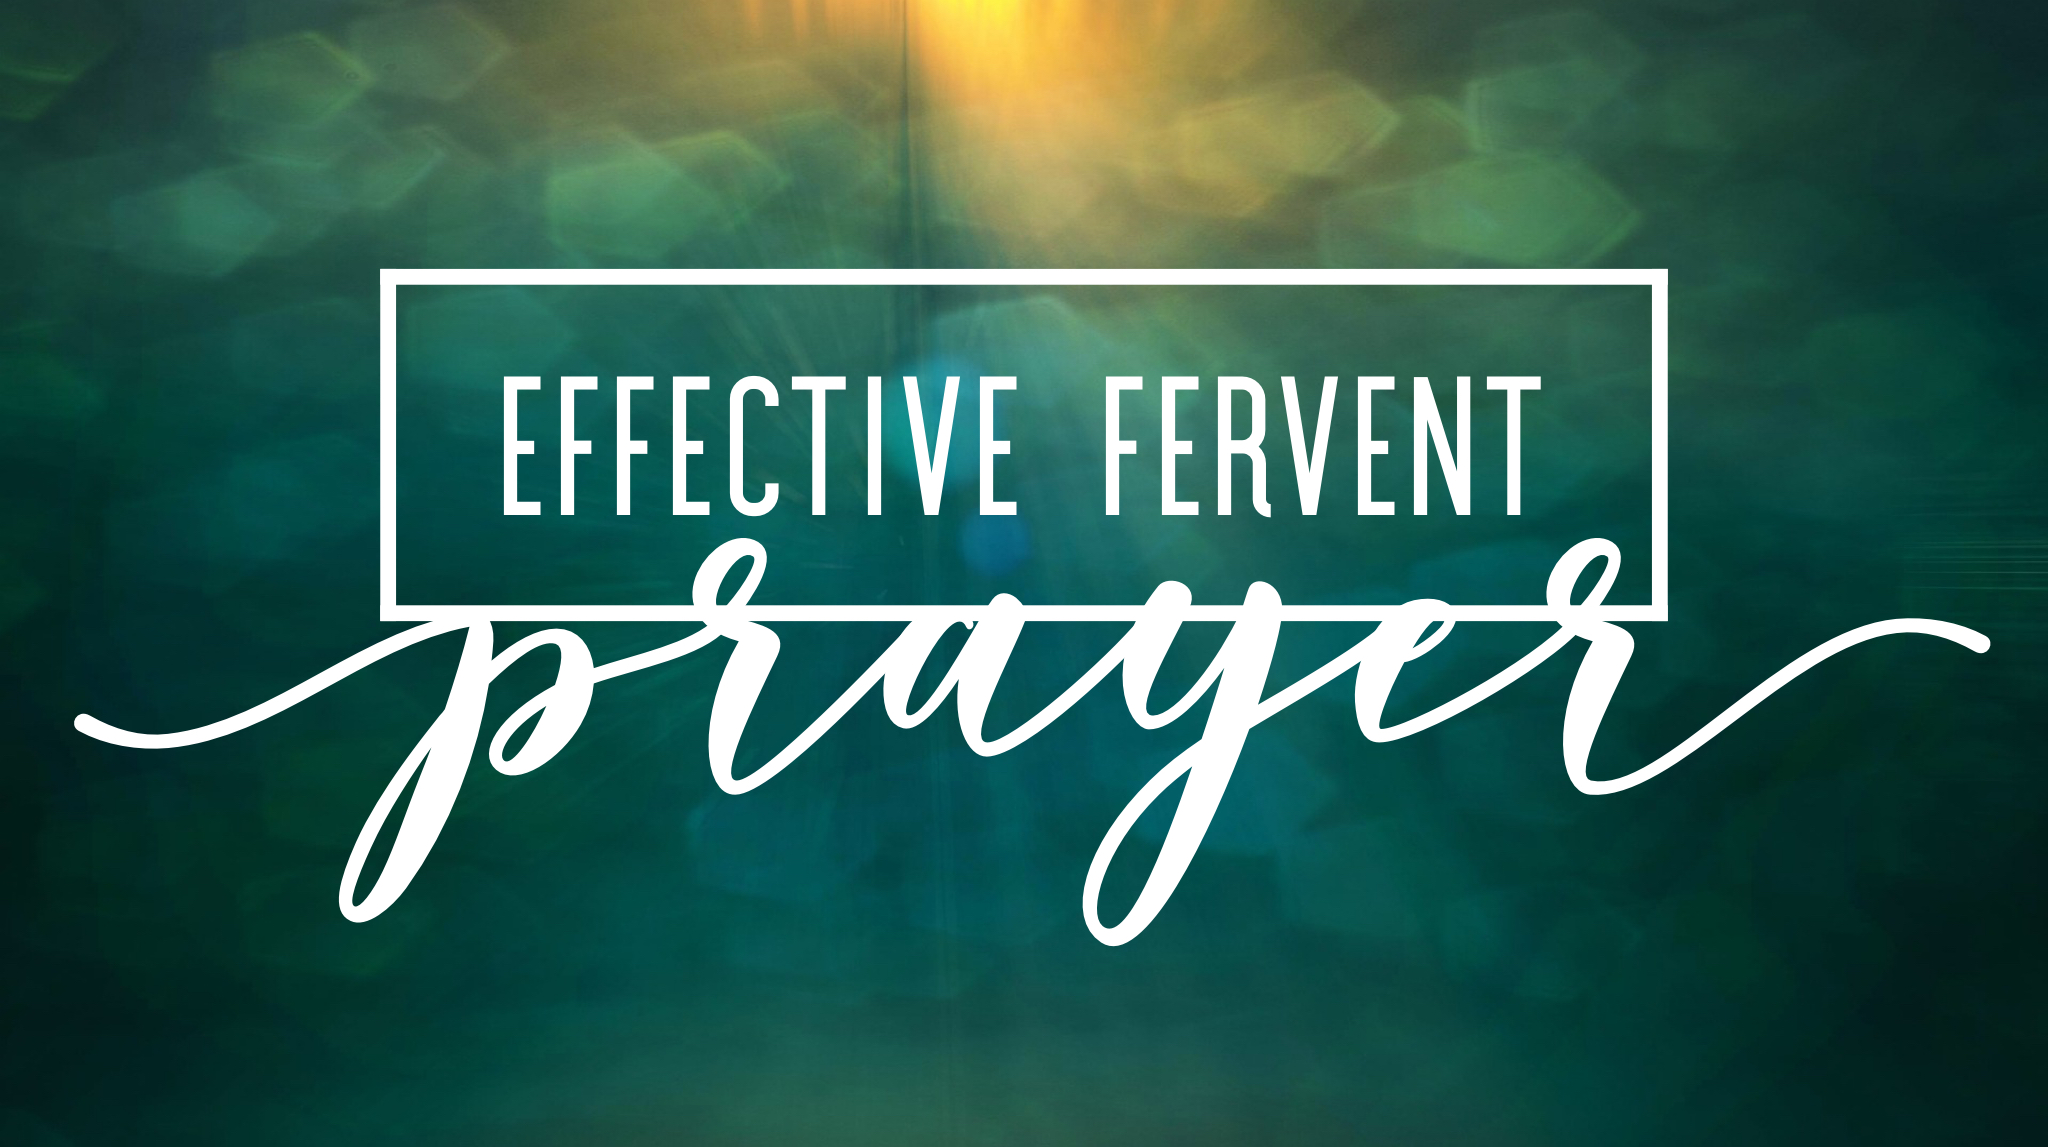 EffectiveFerventPrayer.jpg